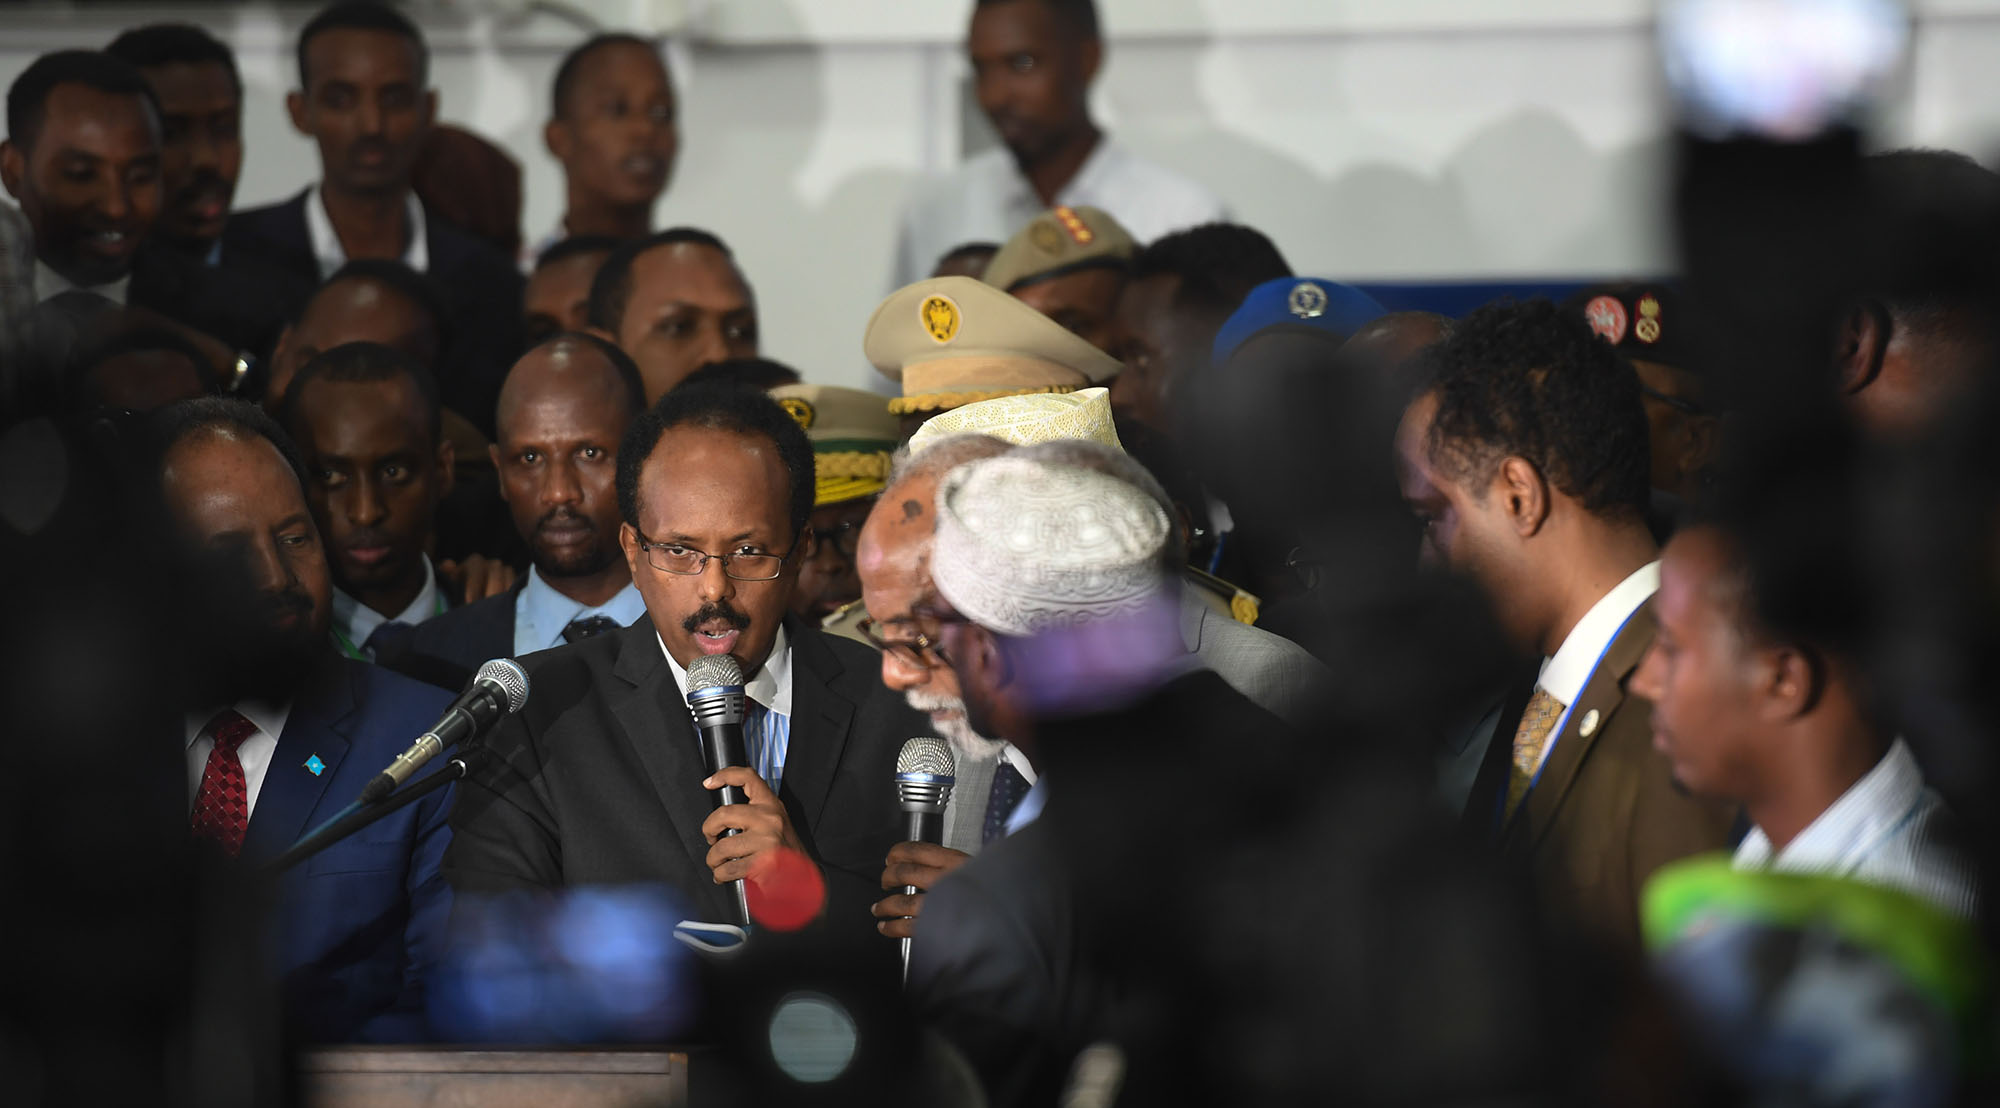 The new president of Somalia Mohamed Abdullahi Farmajo is sworn in after he was declared the winner of the presidential election held at the Mogadishu Airport hangar in Mogadishu on February 8, 2017